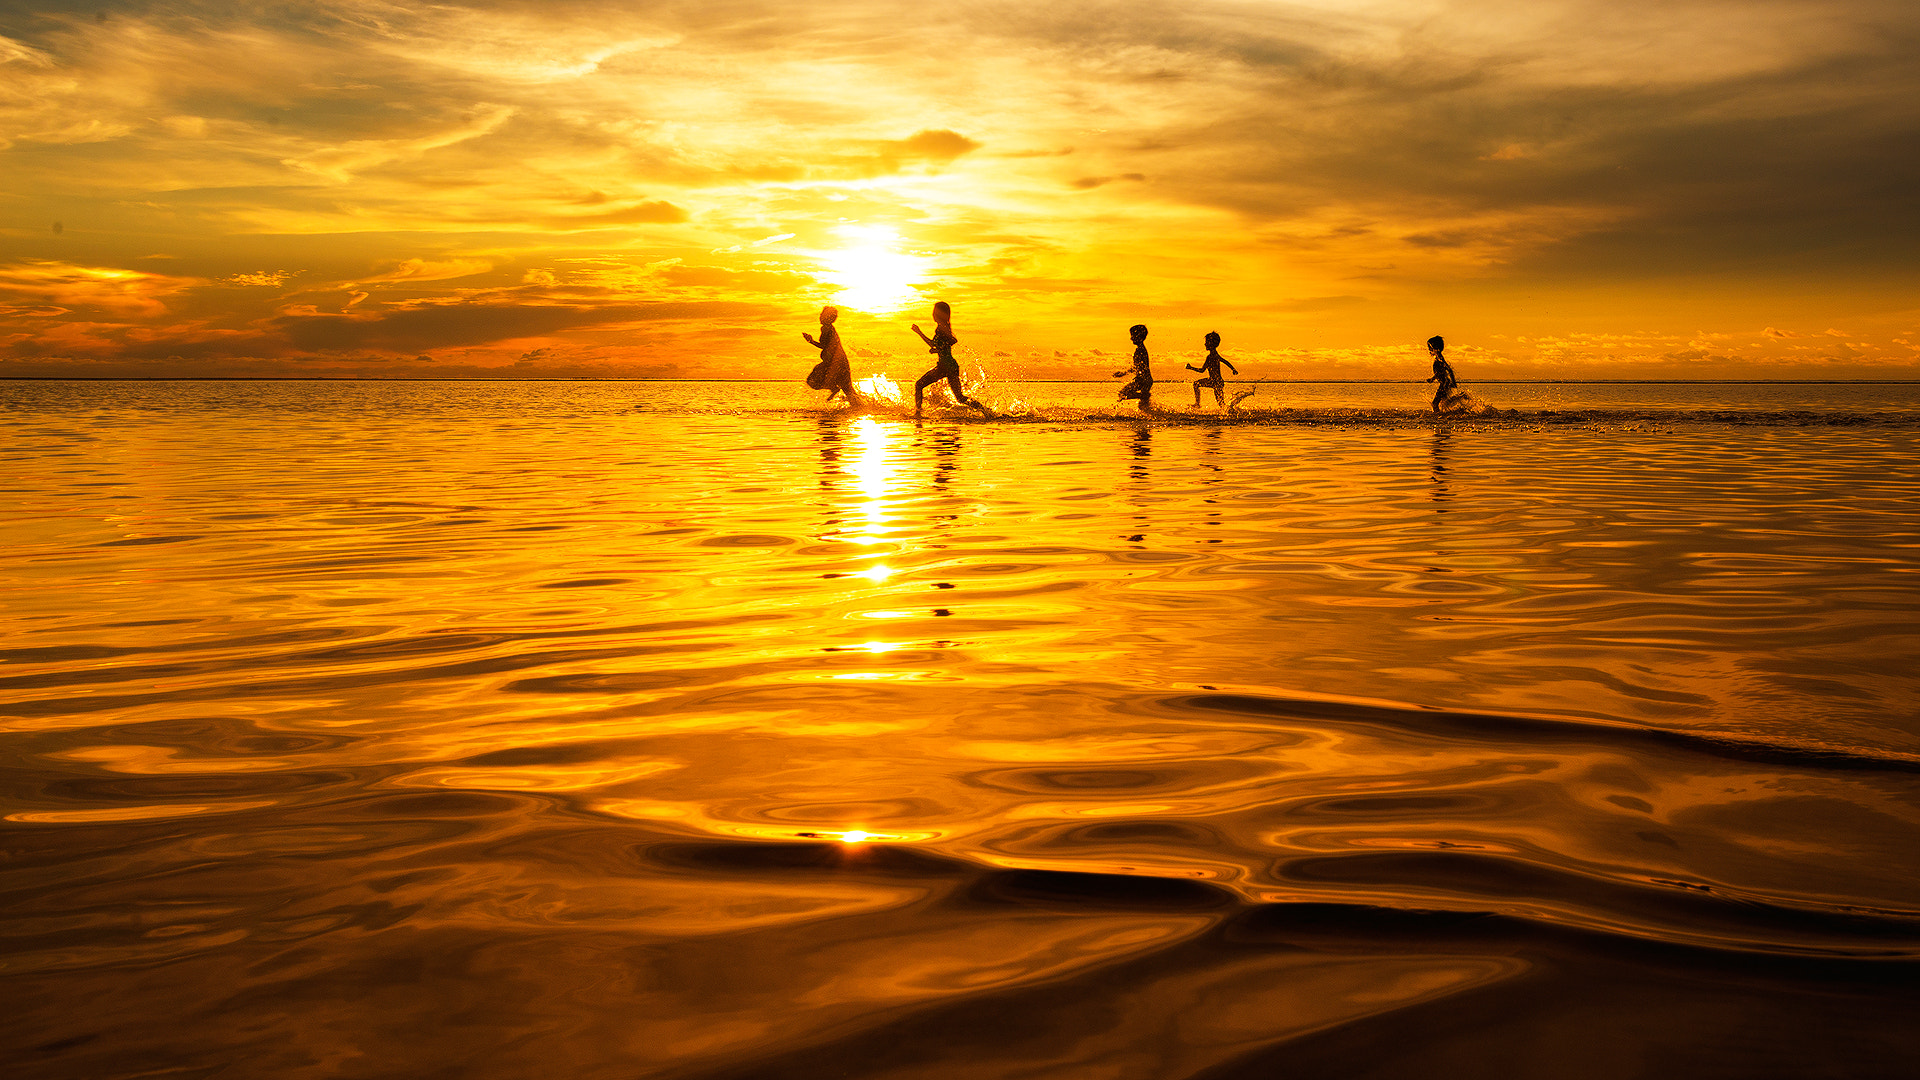 Photograph Running in The Sea of Gold by Esmar Abdul on 500px